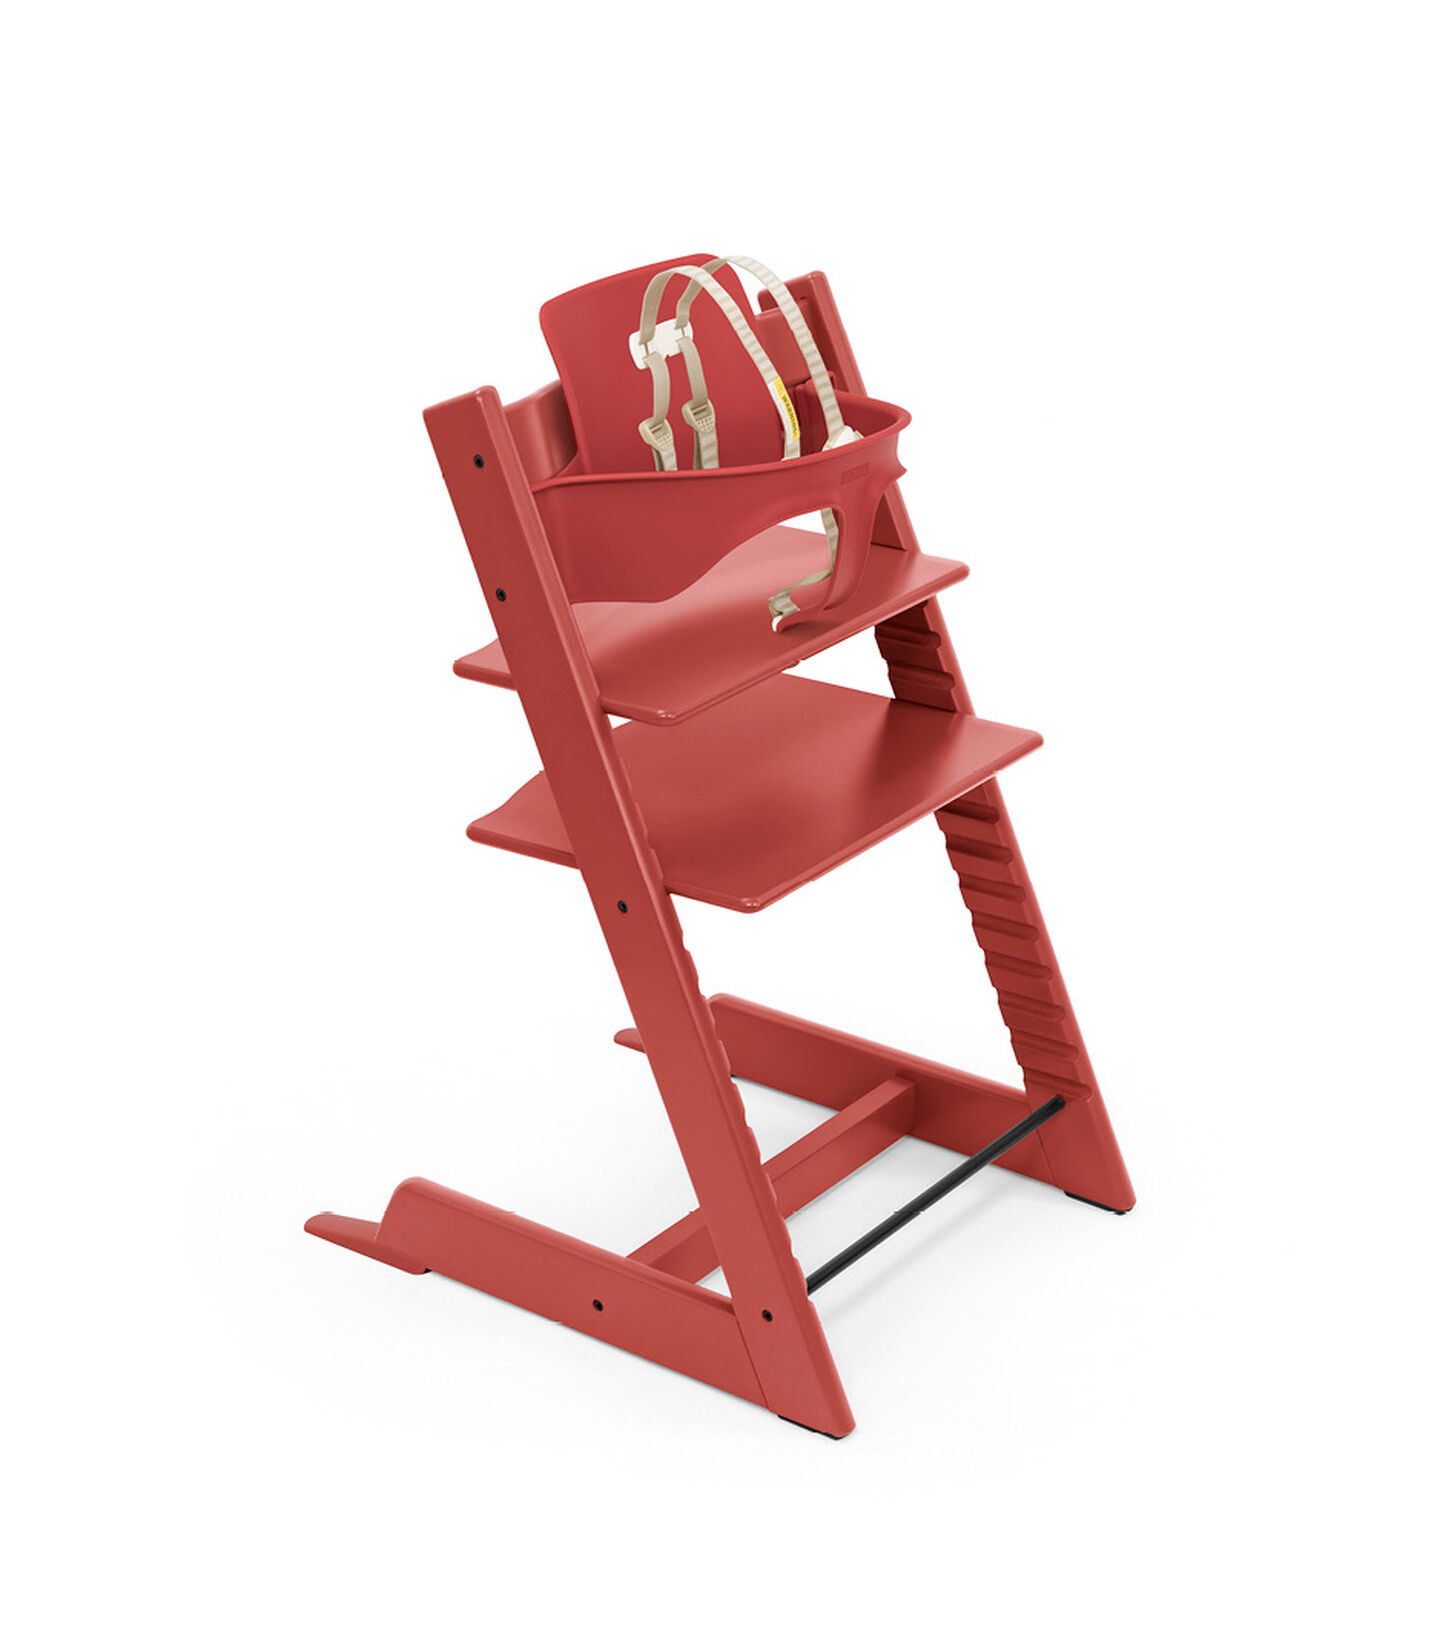 Tripp Trapp® Bundle High Chair US 20 Warm Red, Warm Red, mainview view 1